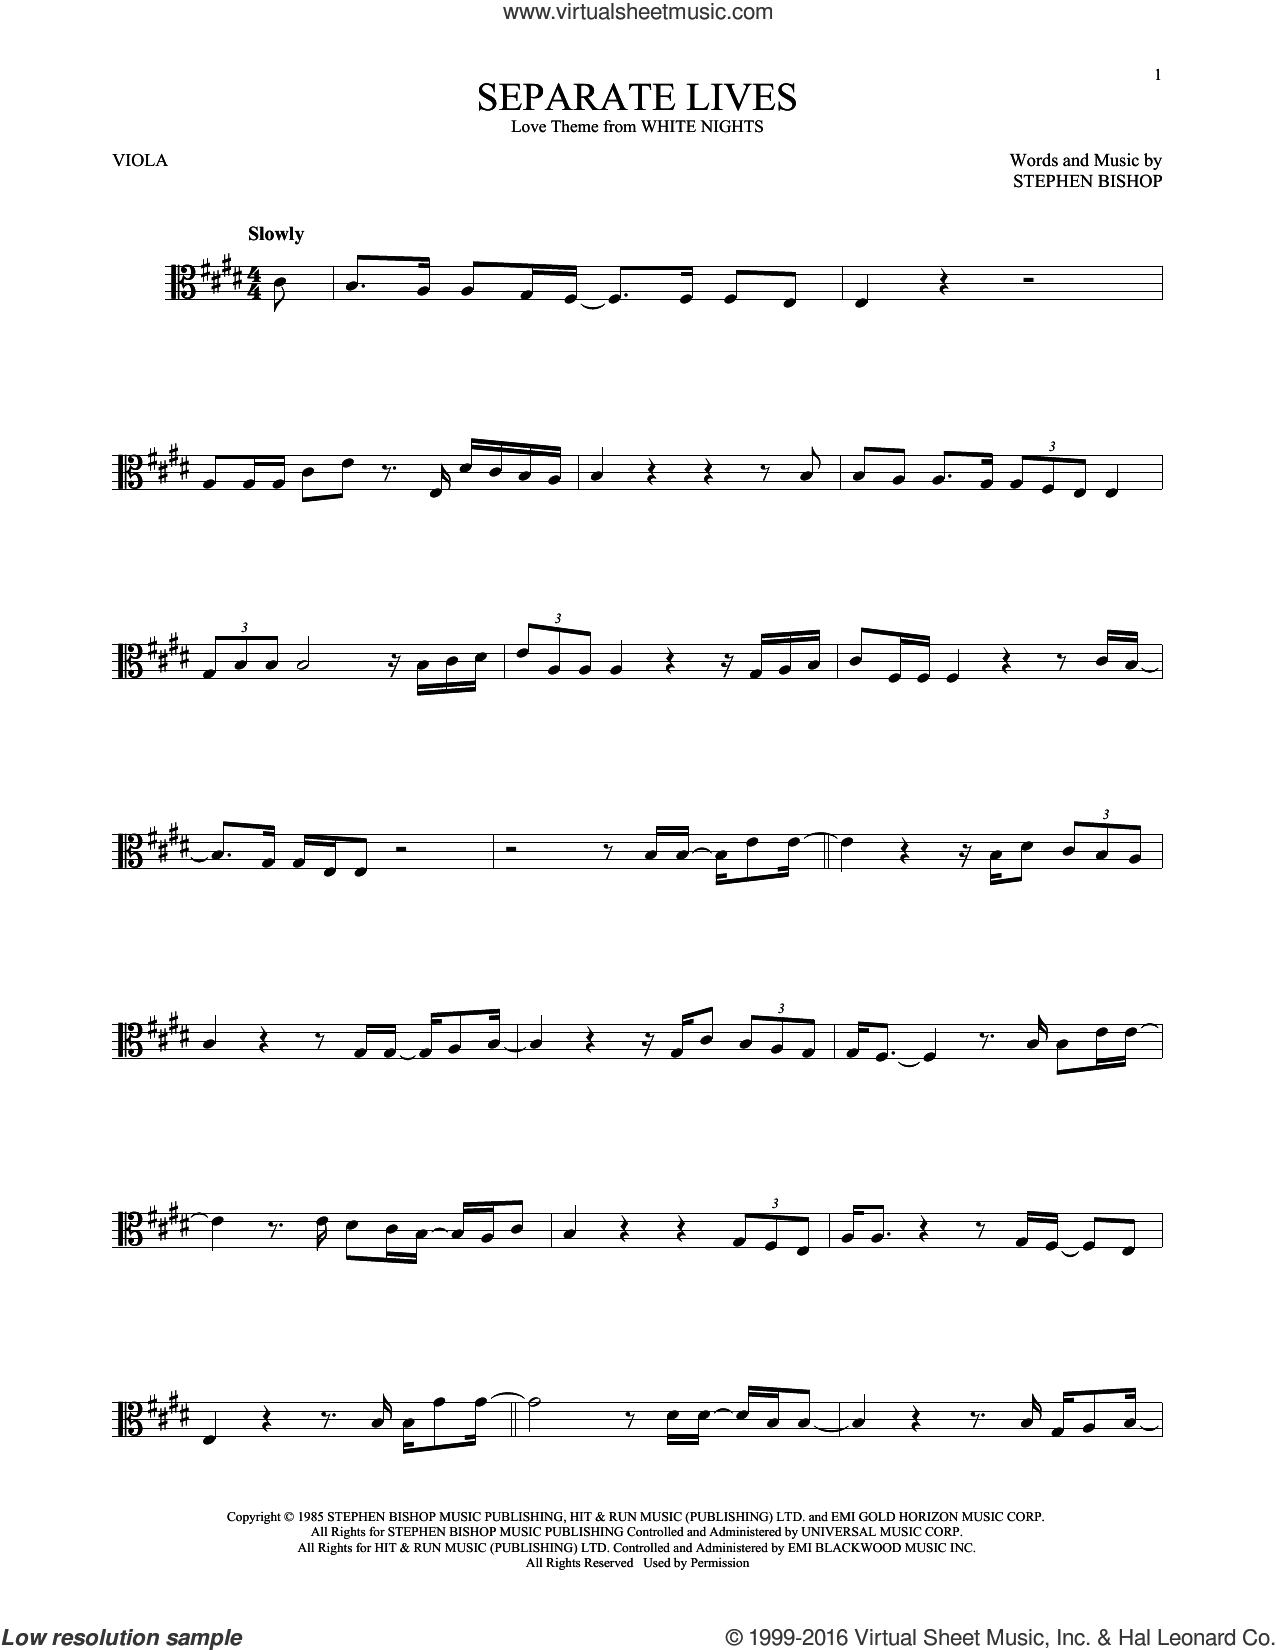 Separate Lives sheet music for viola solo by Stephen Bishop